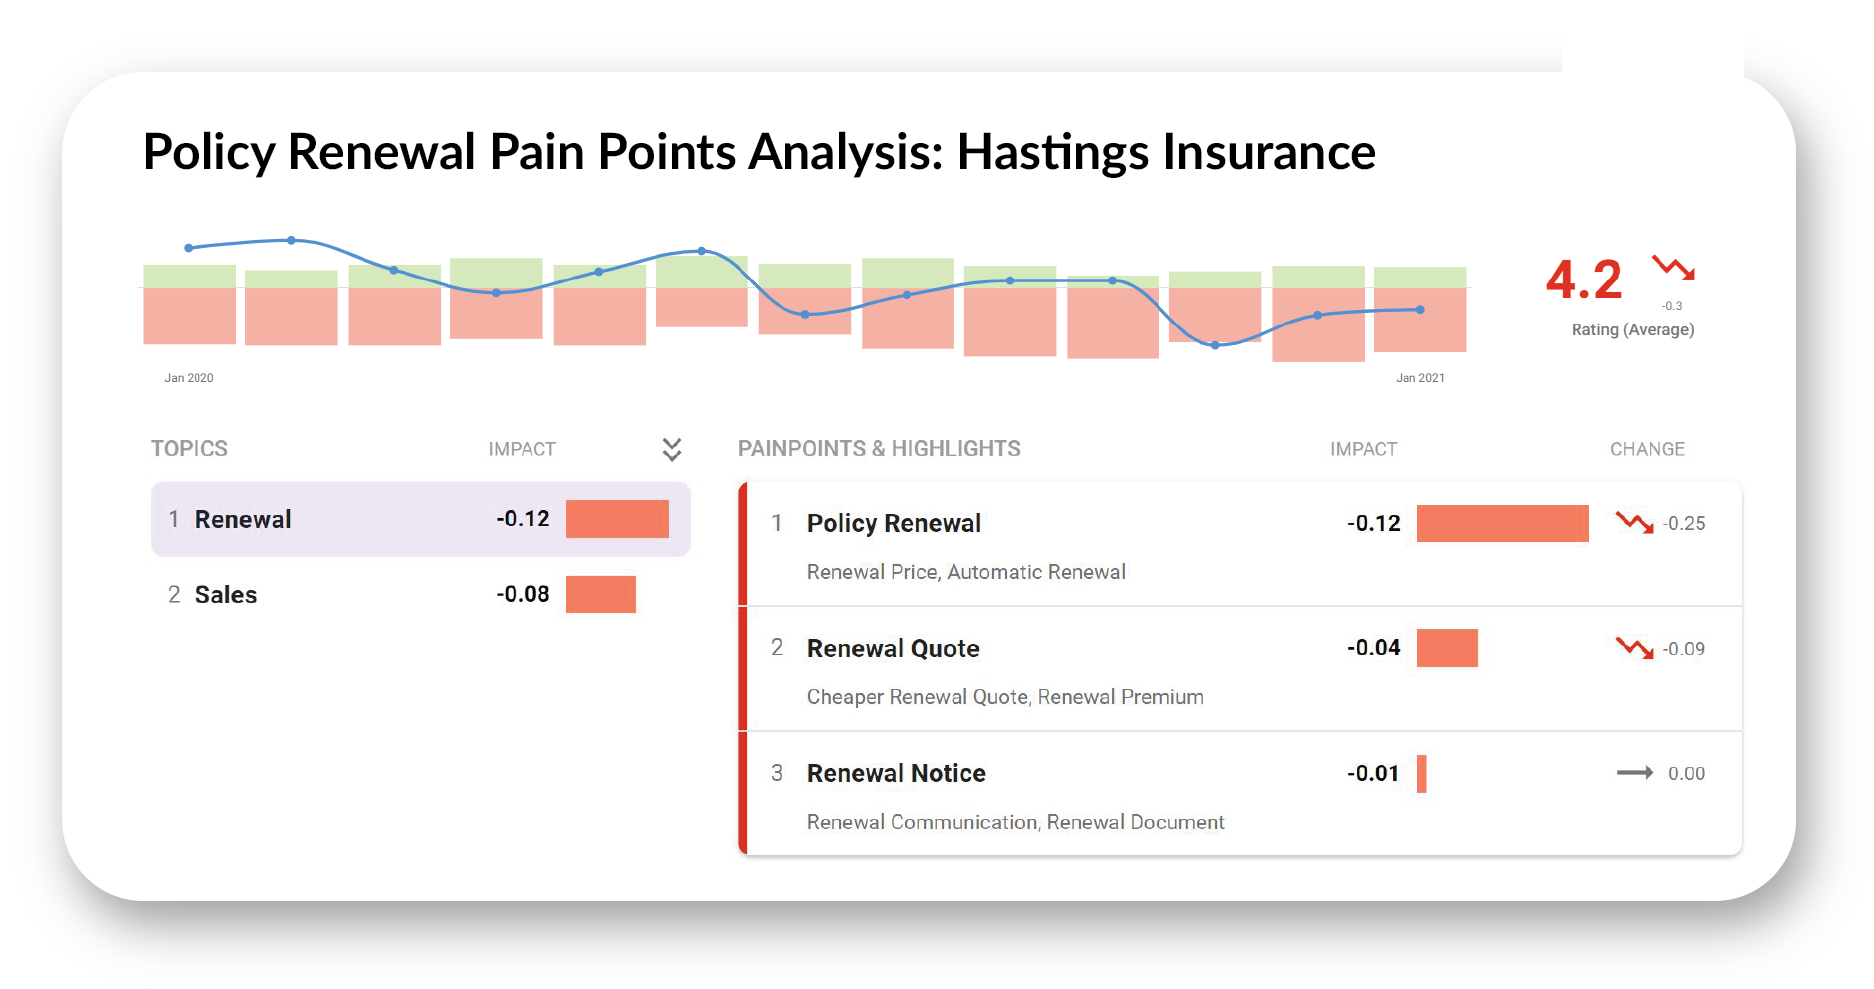 Policy renewal pain point analysis for hastings insurance